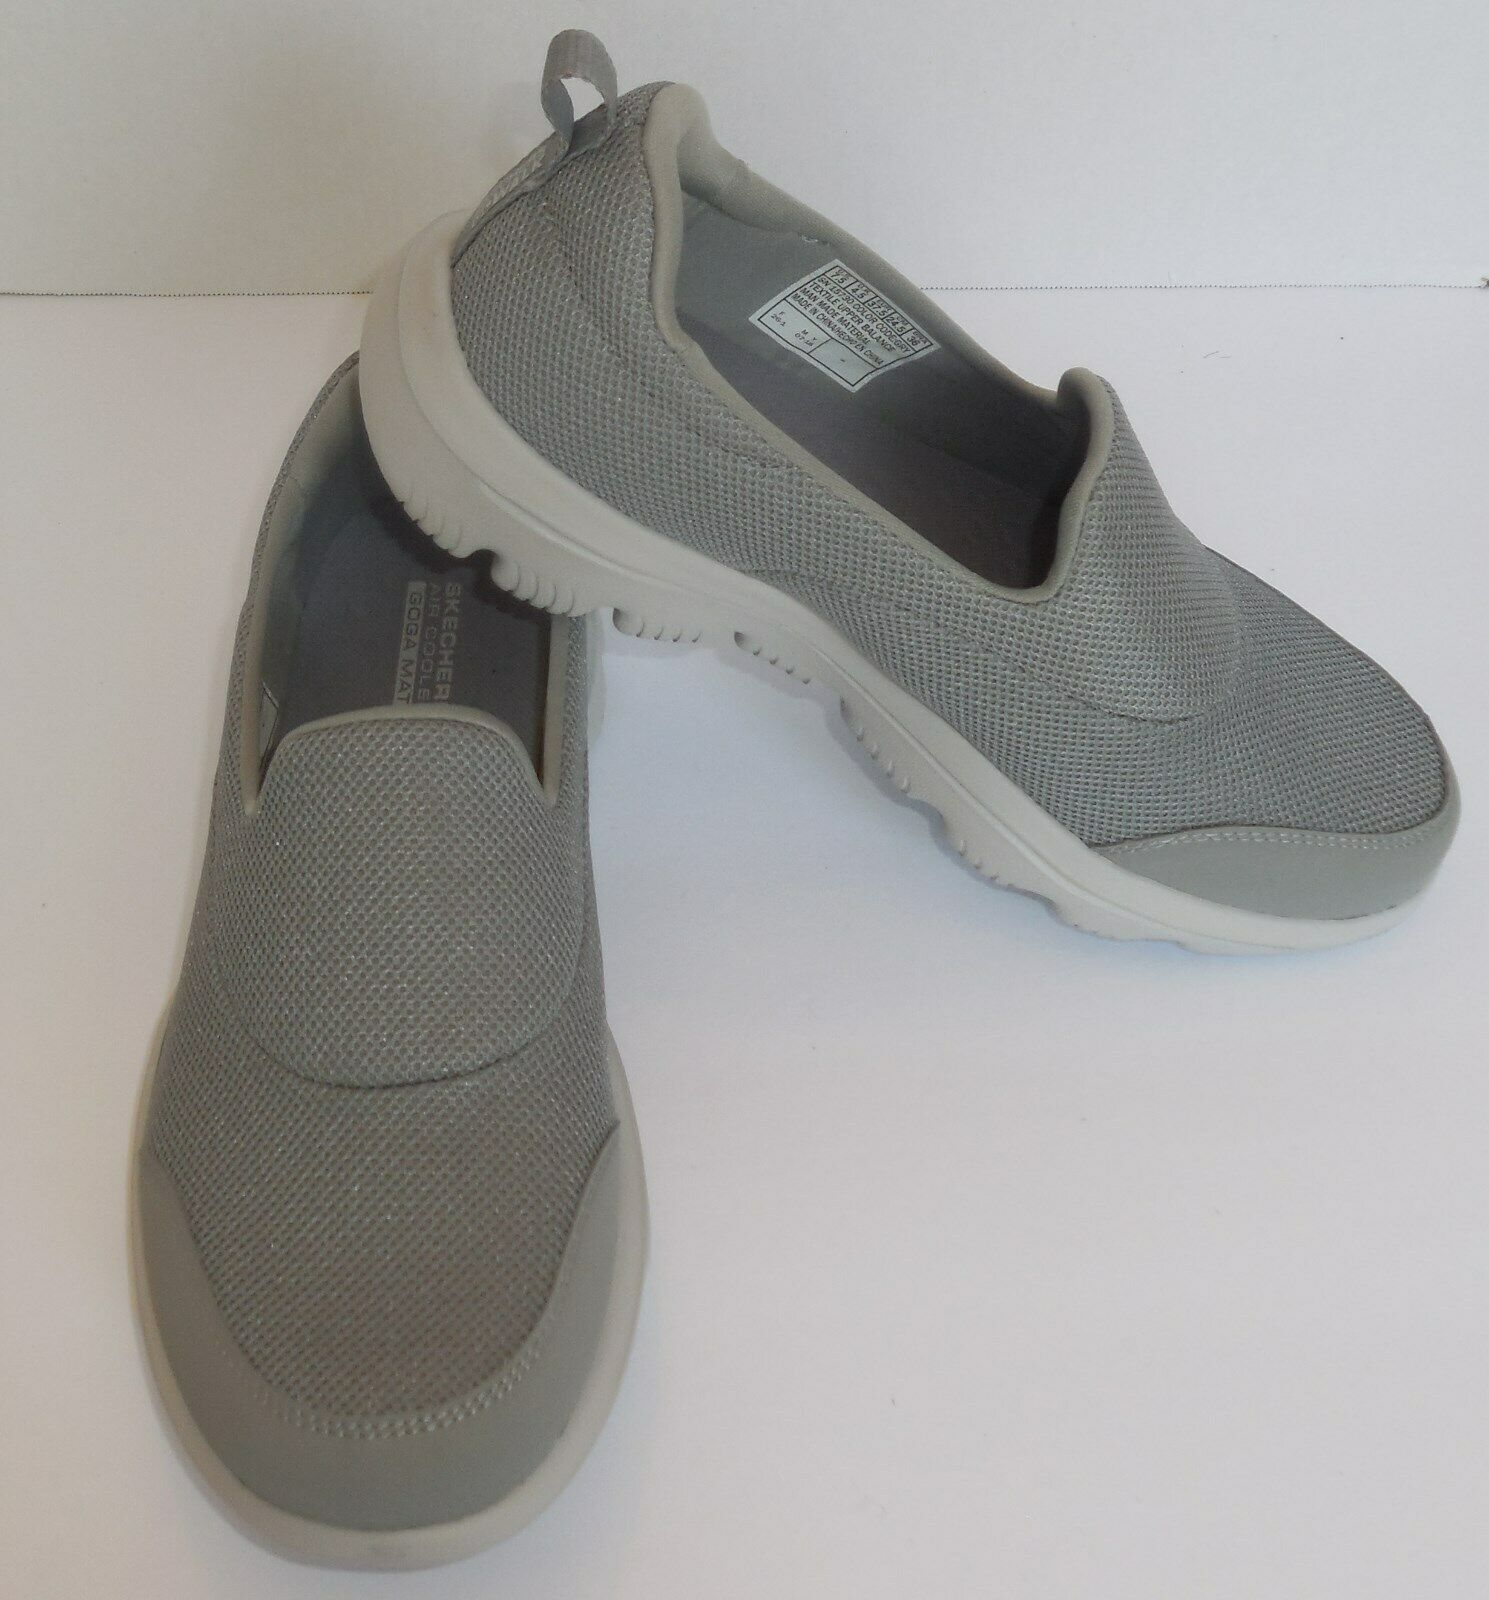 Primary image for Skechers Go Walk Evolution Ultra Reach Womens 7.5 Shoes Grey Gray New 15730